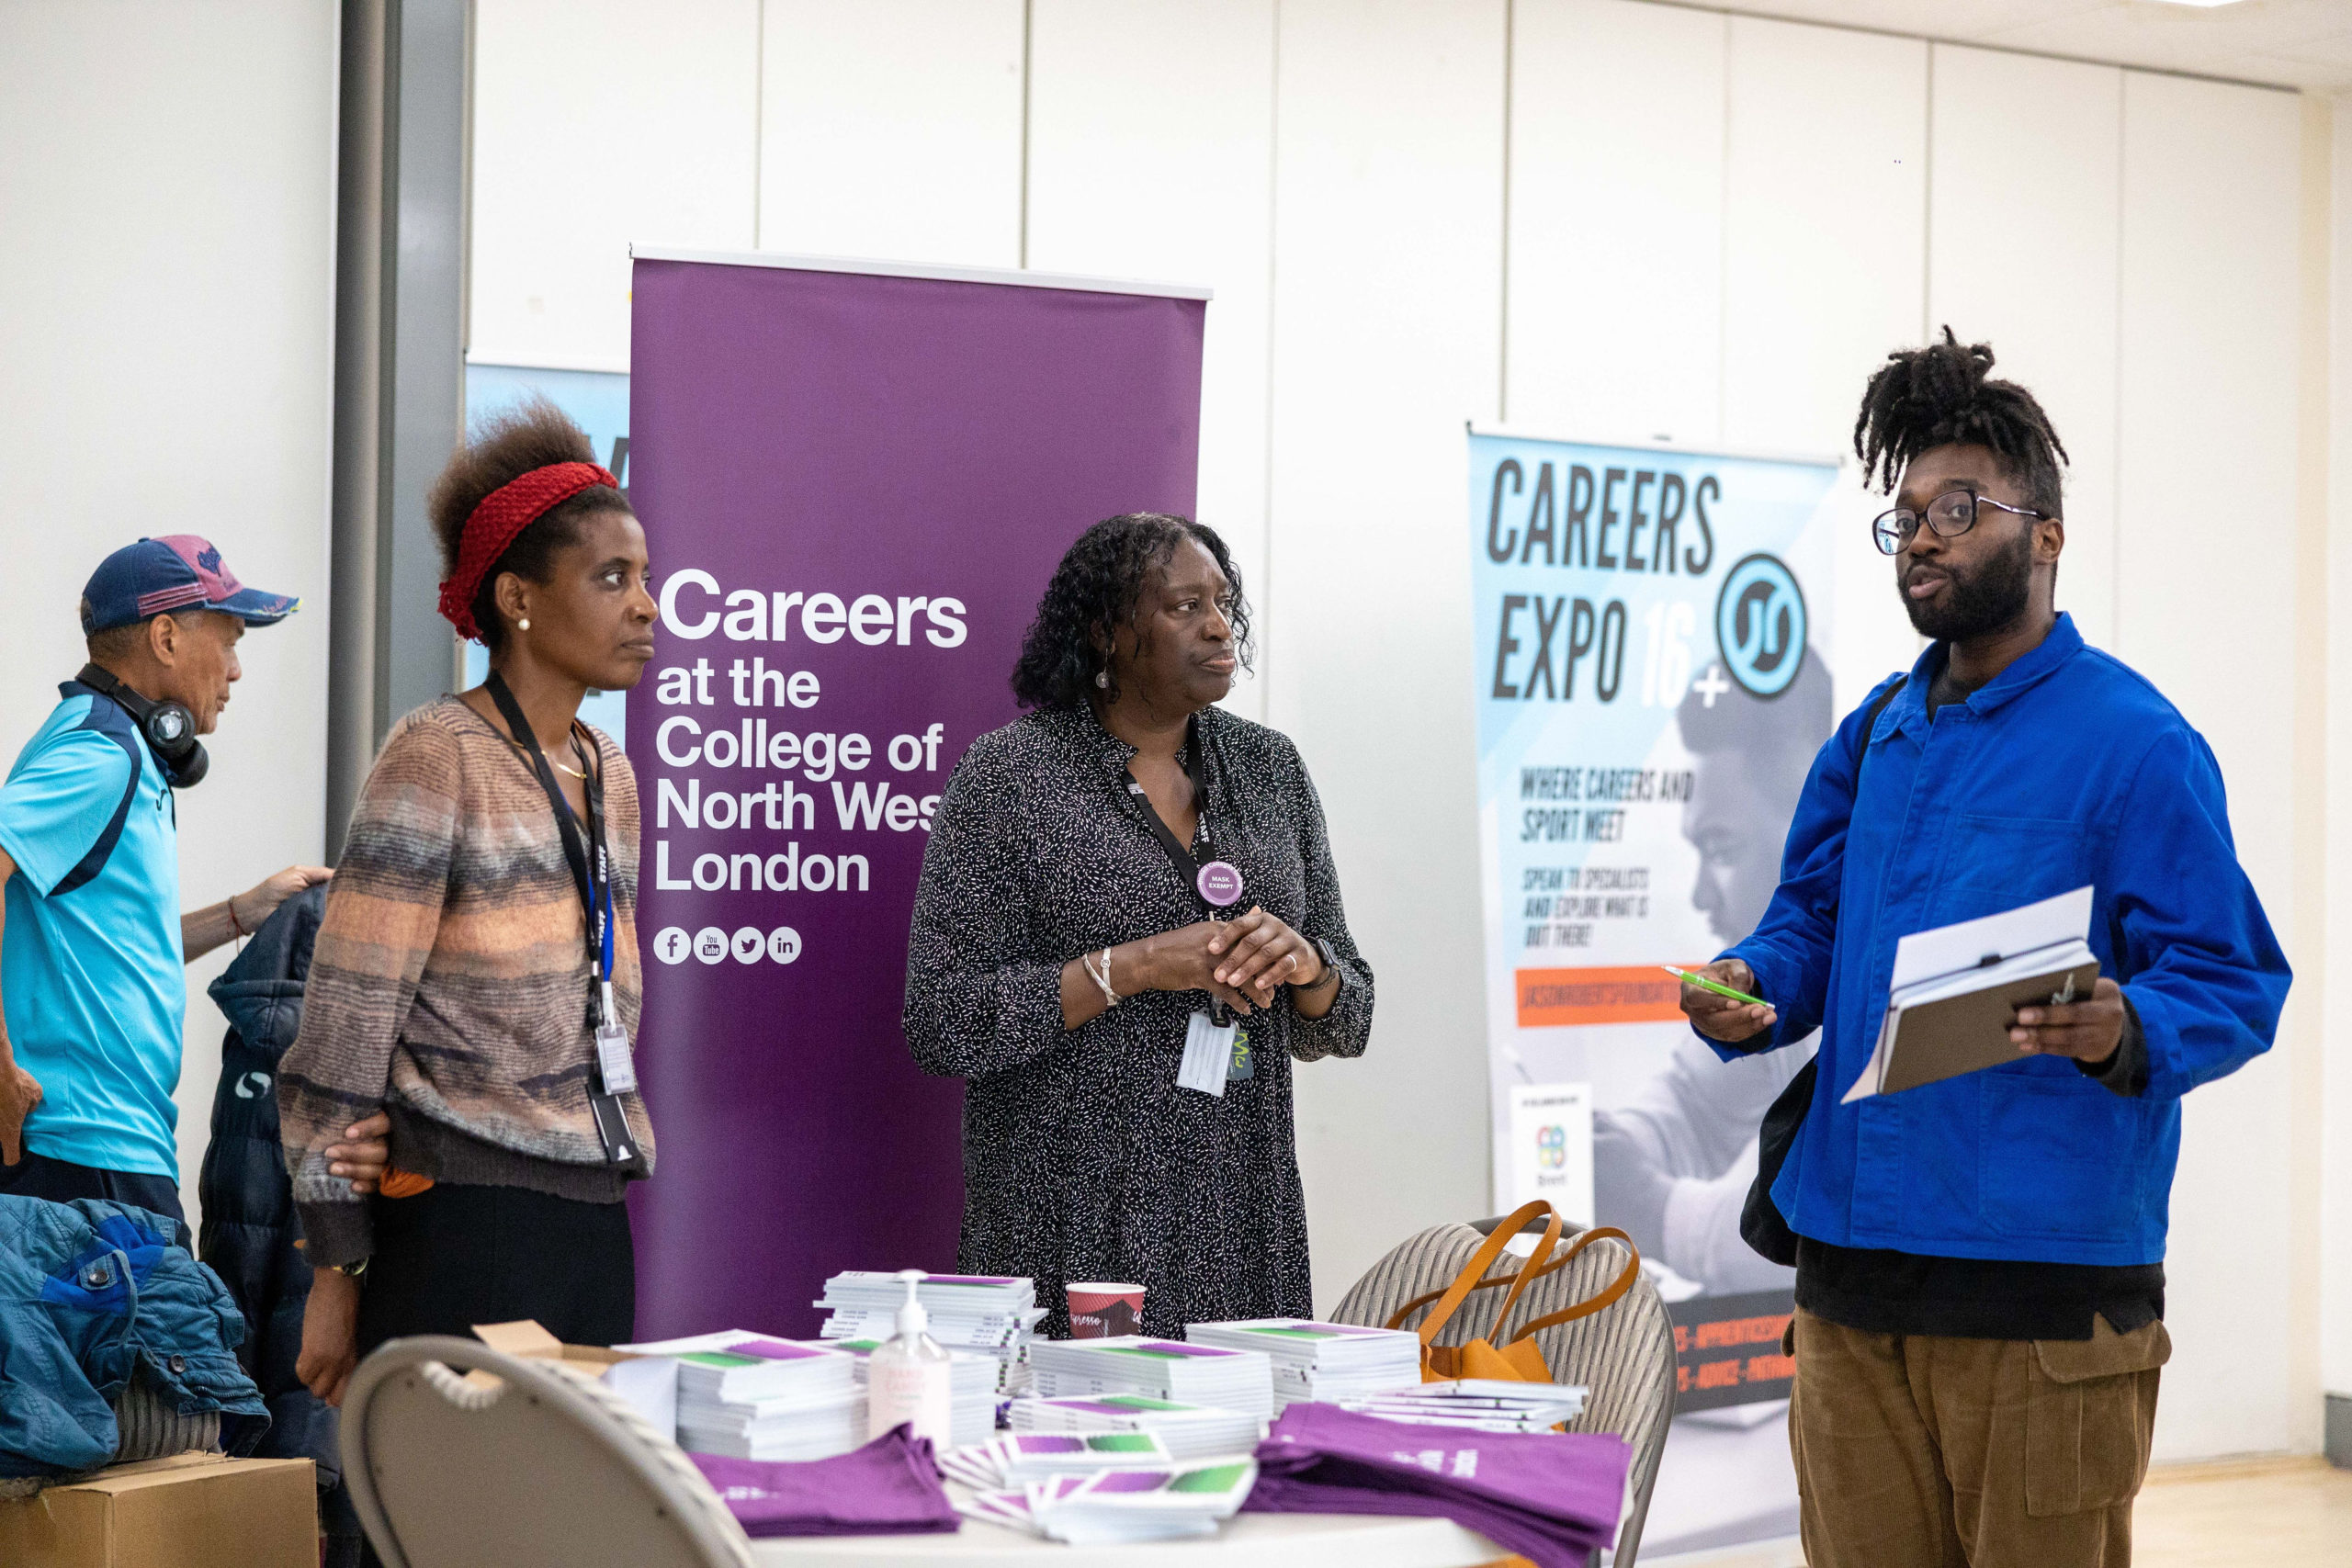 JRF Careers Expo inspires Young People in Brent